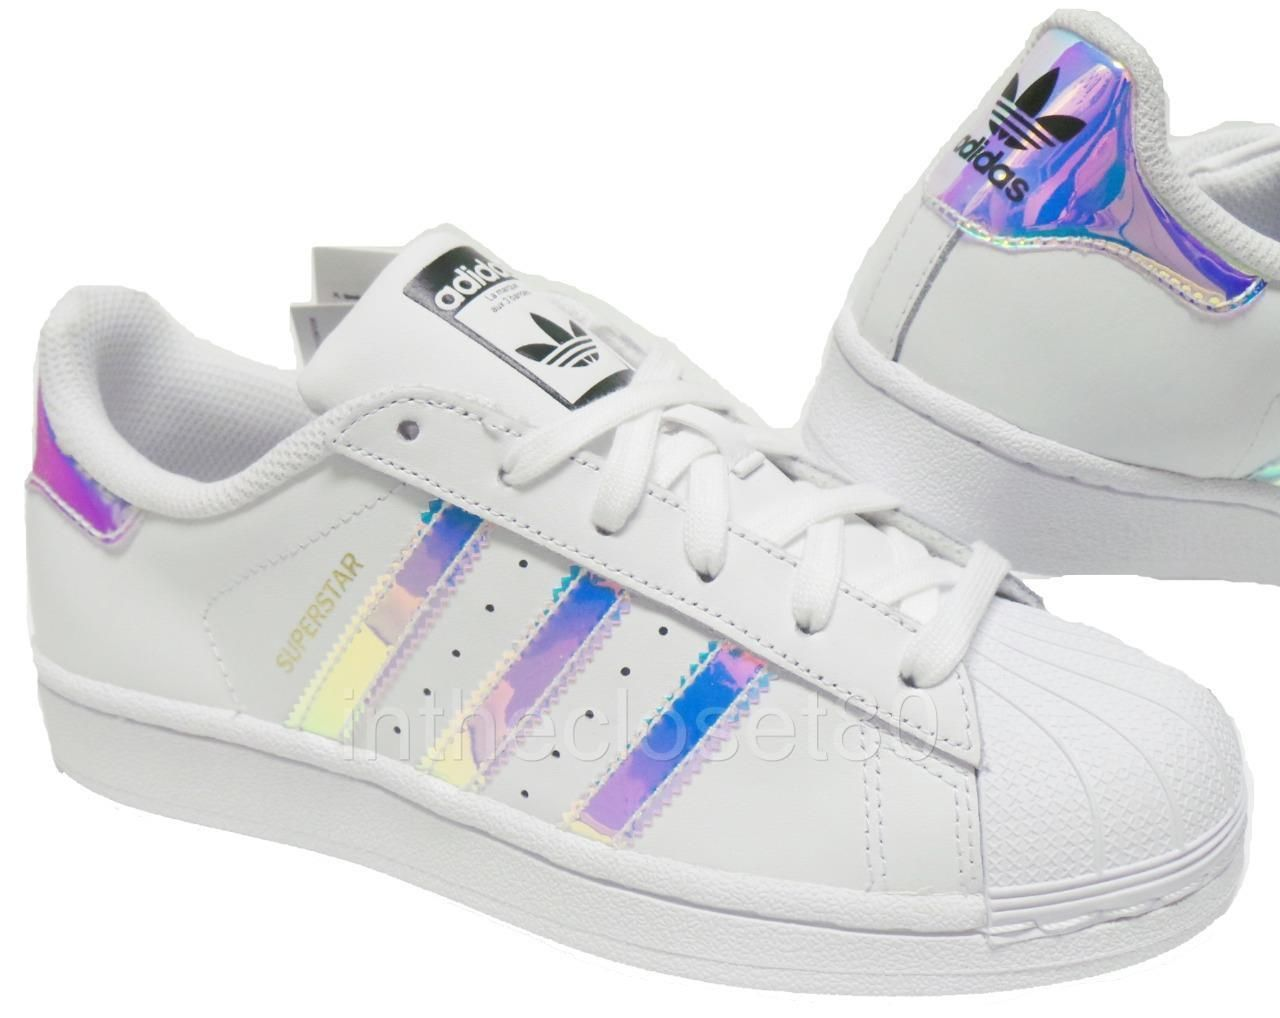 toda la vida Bolsa Esperar algo  Adidas Superstar Iridescent GS White Silver Juniors Womens Girls Trainers  AQ6278 | eBay | Adidas superstar women, Adidas superstar holographic, Adidas  women